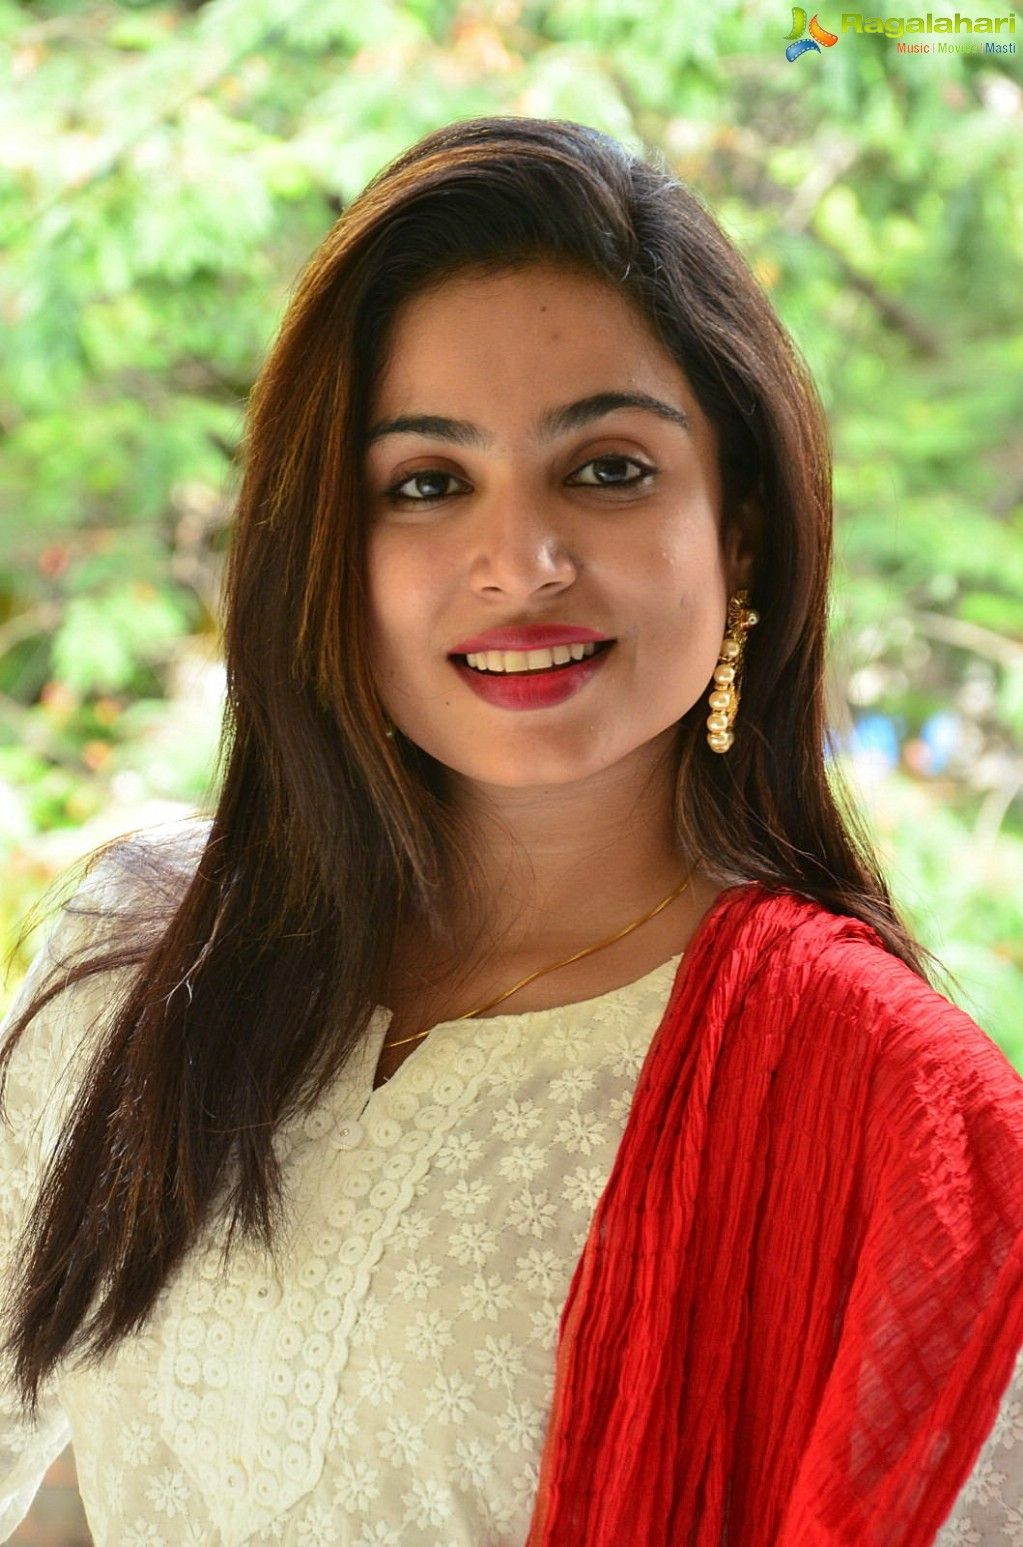 Vrushali Gosavi Image 4 Telugu Heroines Wallpapers Images Photos Pictures Hd Wallpapers Actresses Actress Wallpaper Girl Number For Friendship